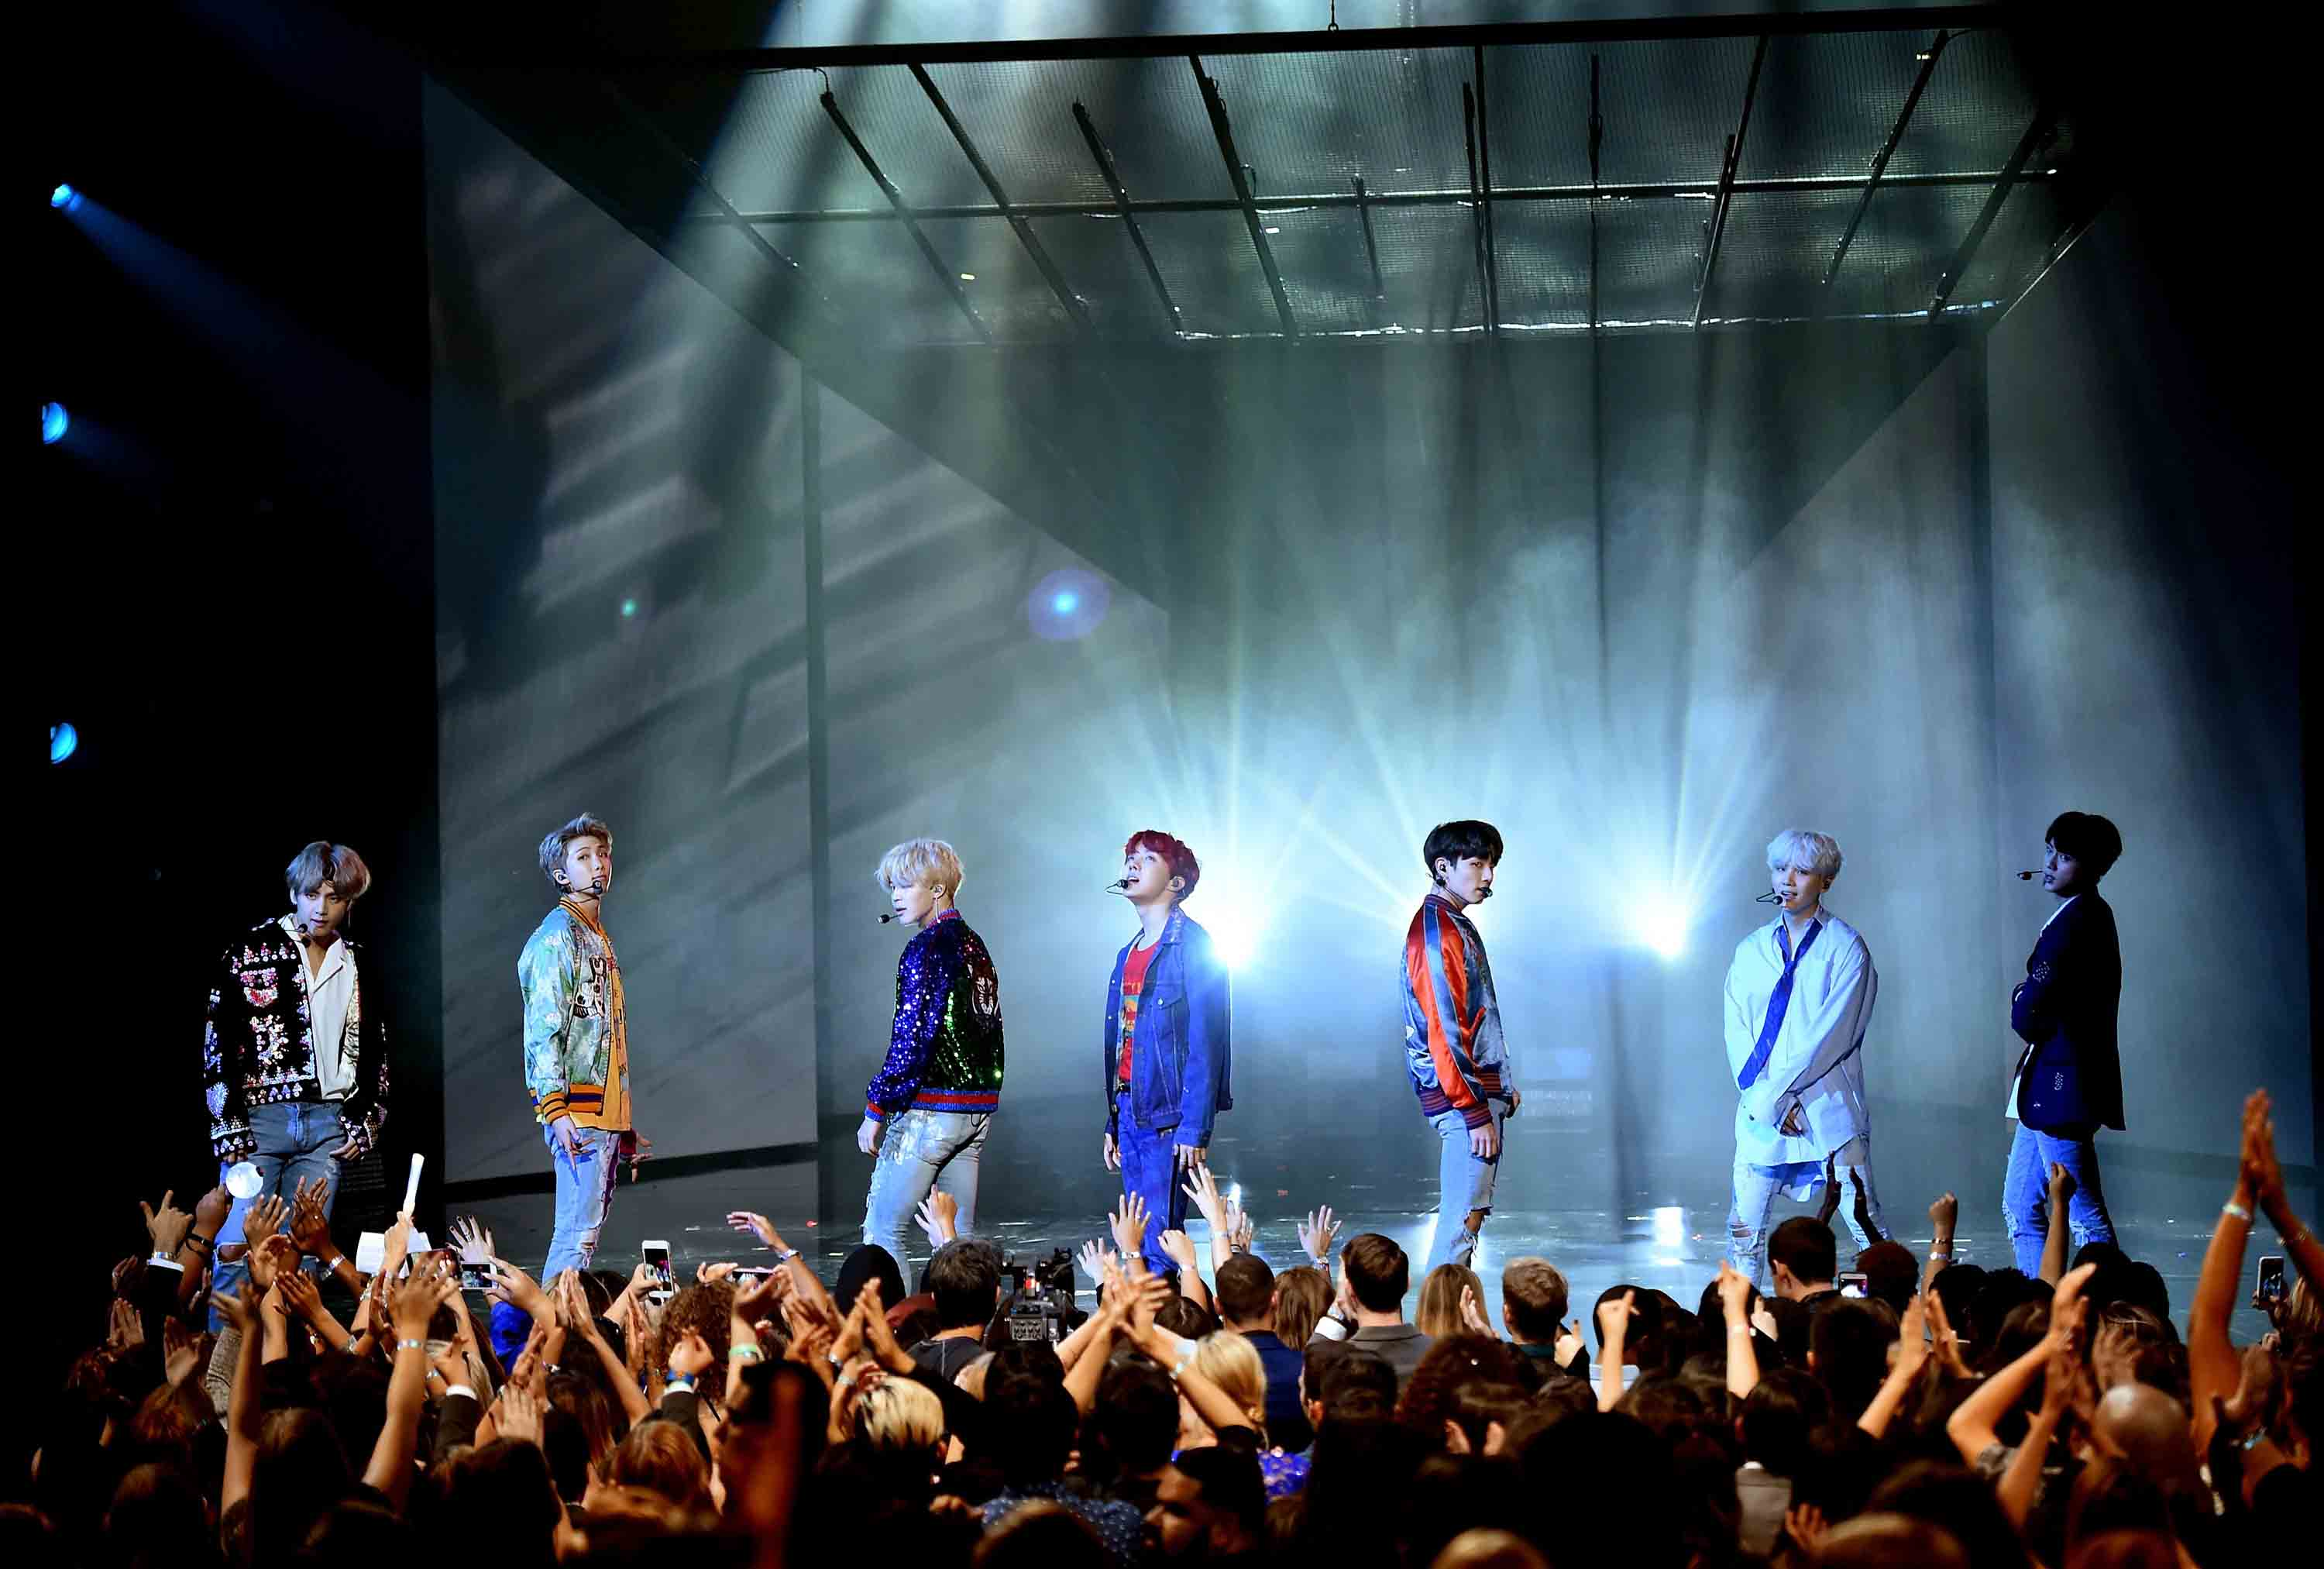 Ama Performers 2017 >> Photo Gallery: BTS at the 2017 AMAs | American Music Awards